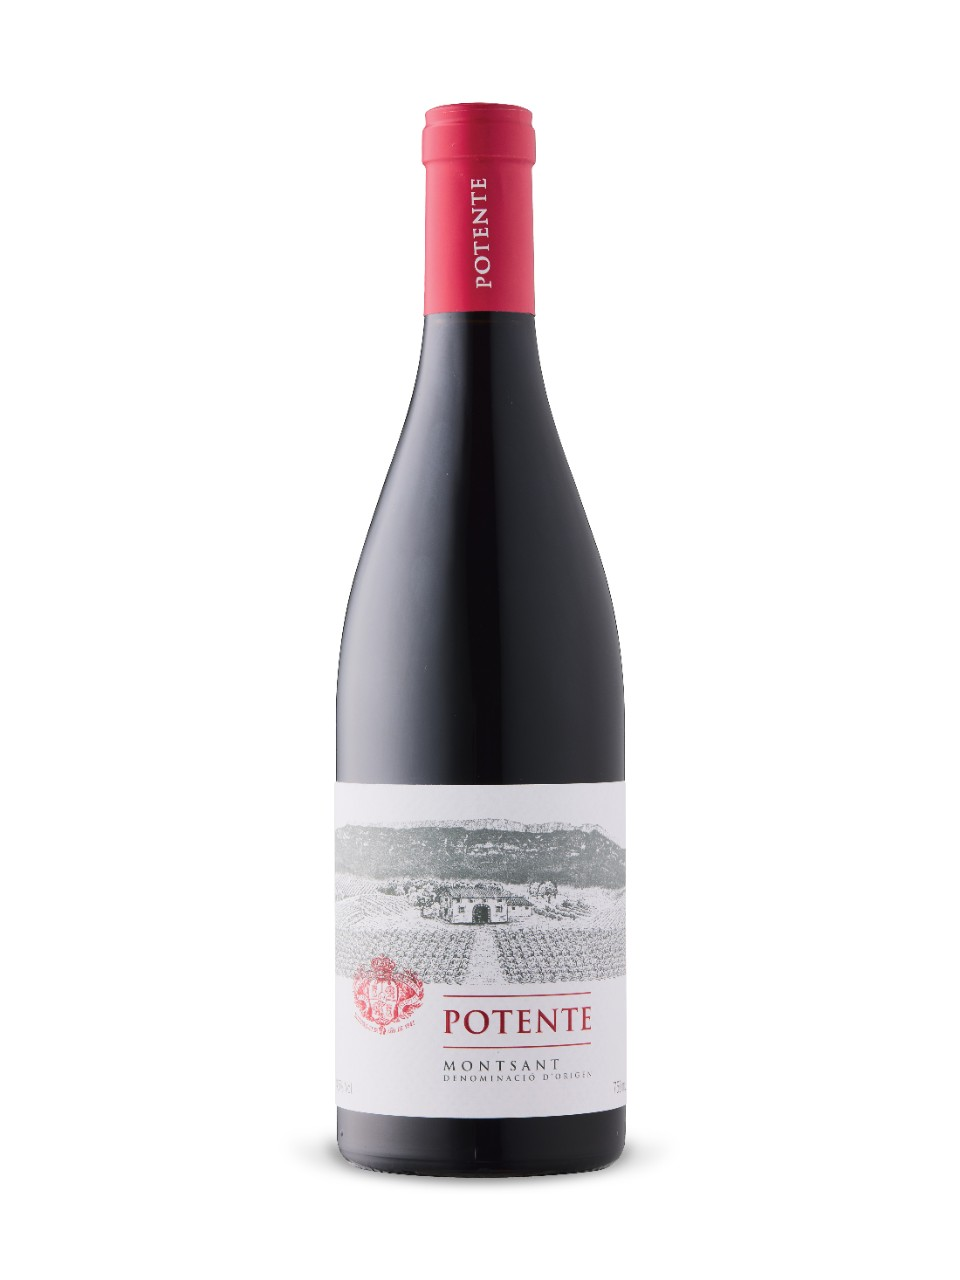 Potente 2018 from LCBO